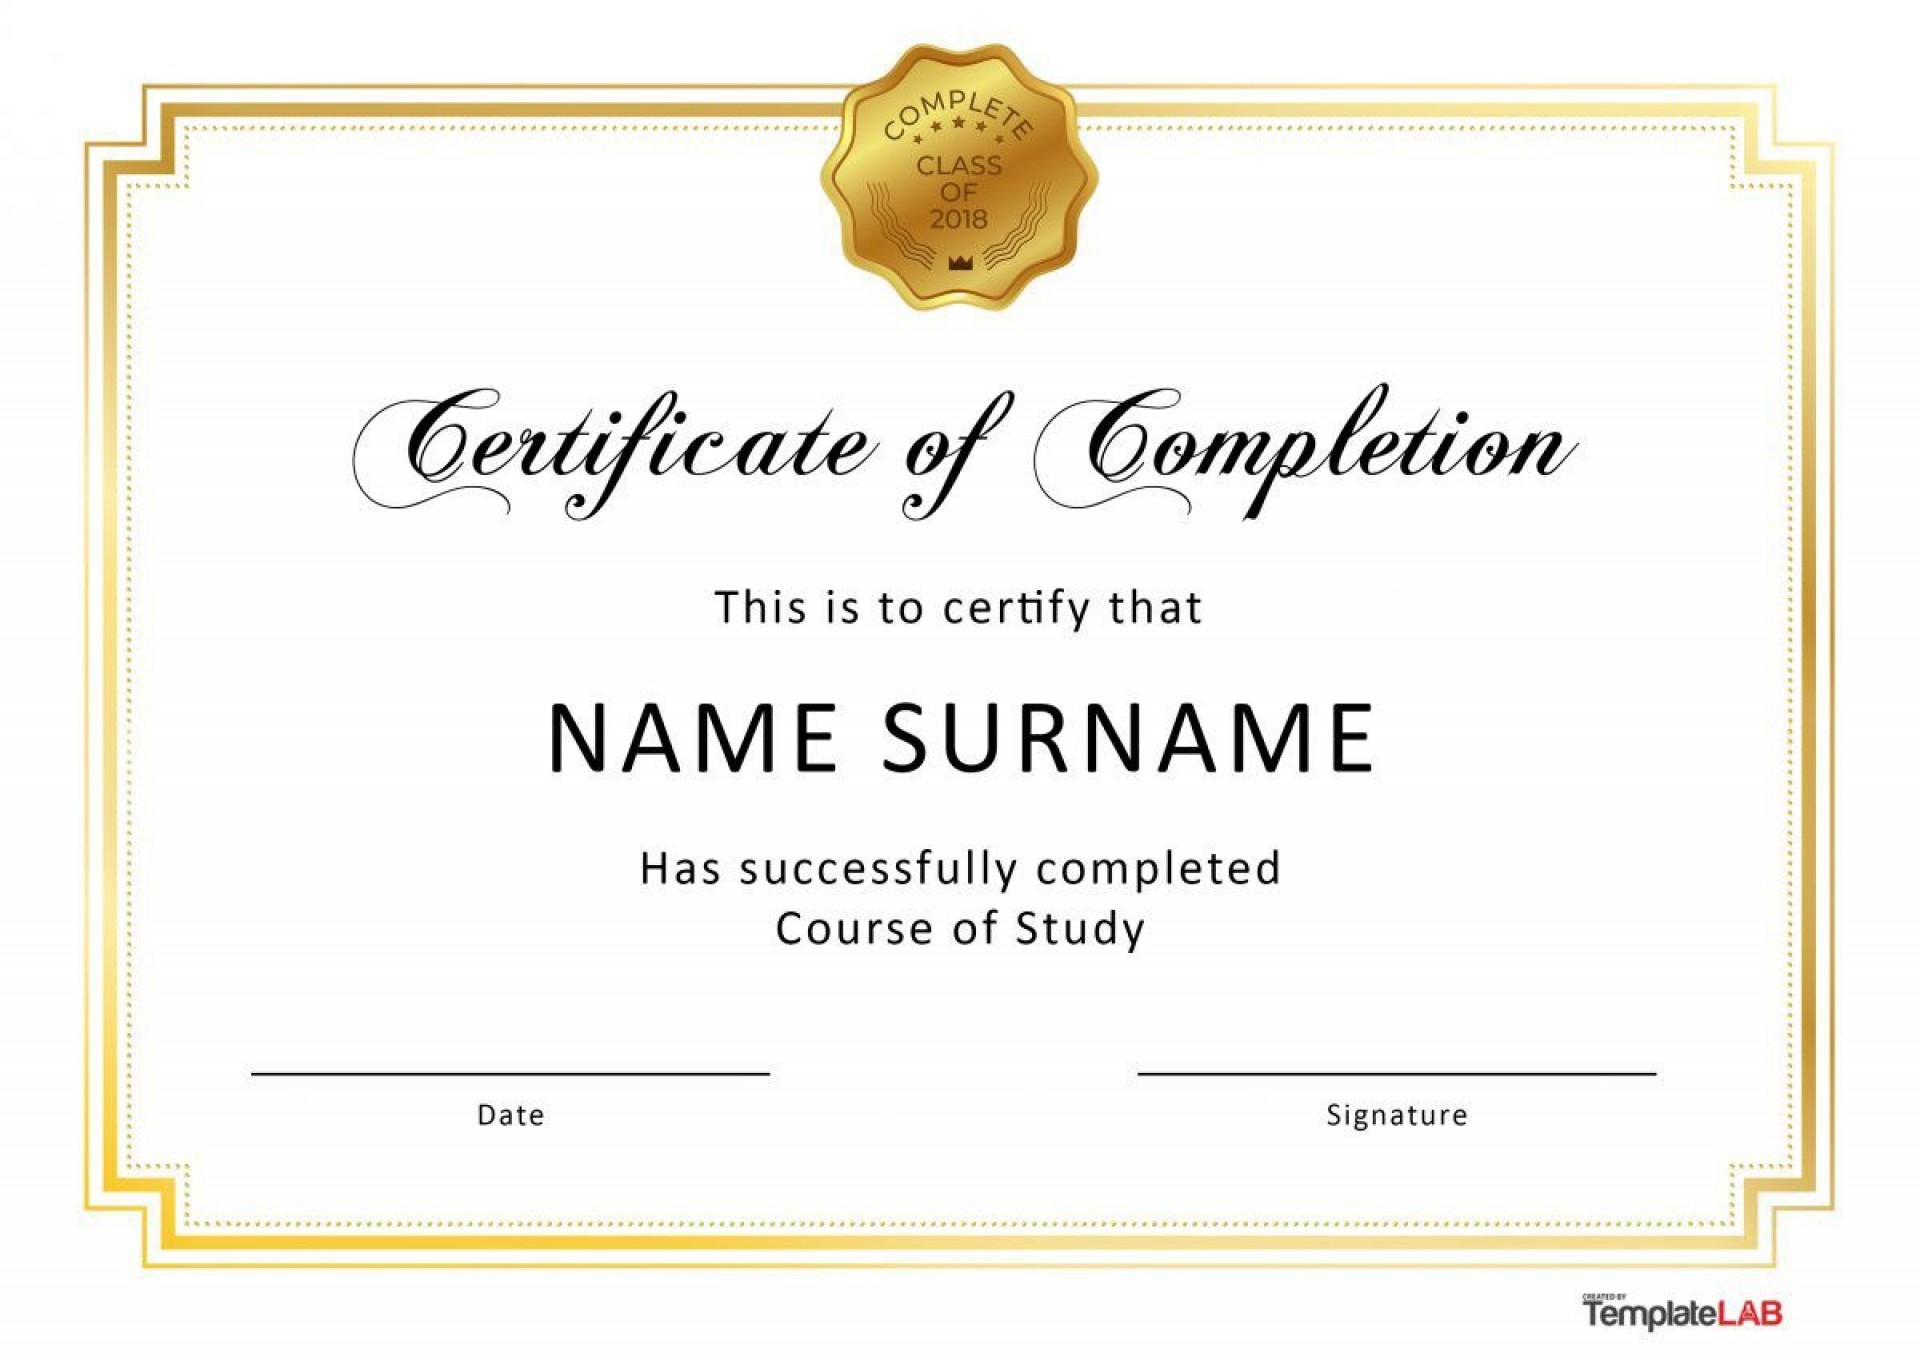 006 Unique Certificate Of Completion Template Free Sample  Training Download Word1920